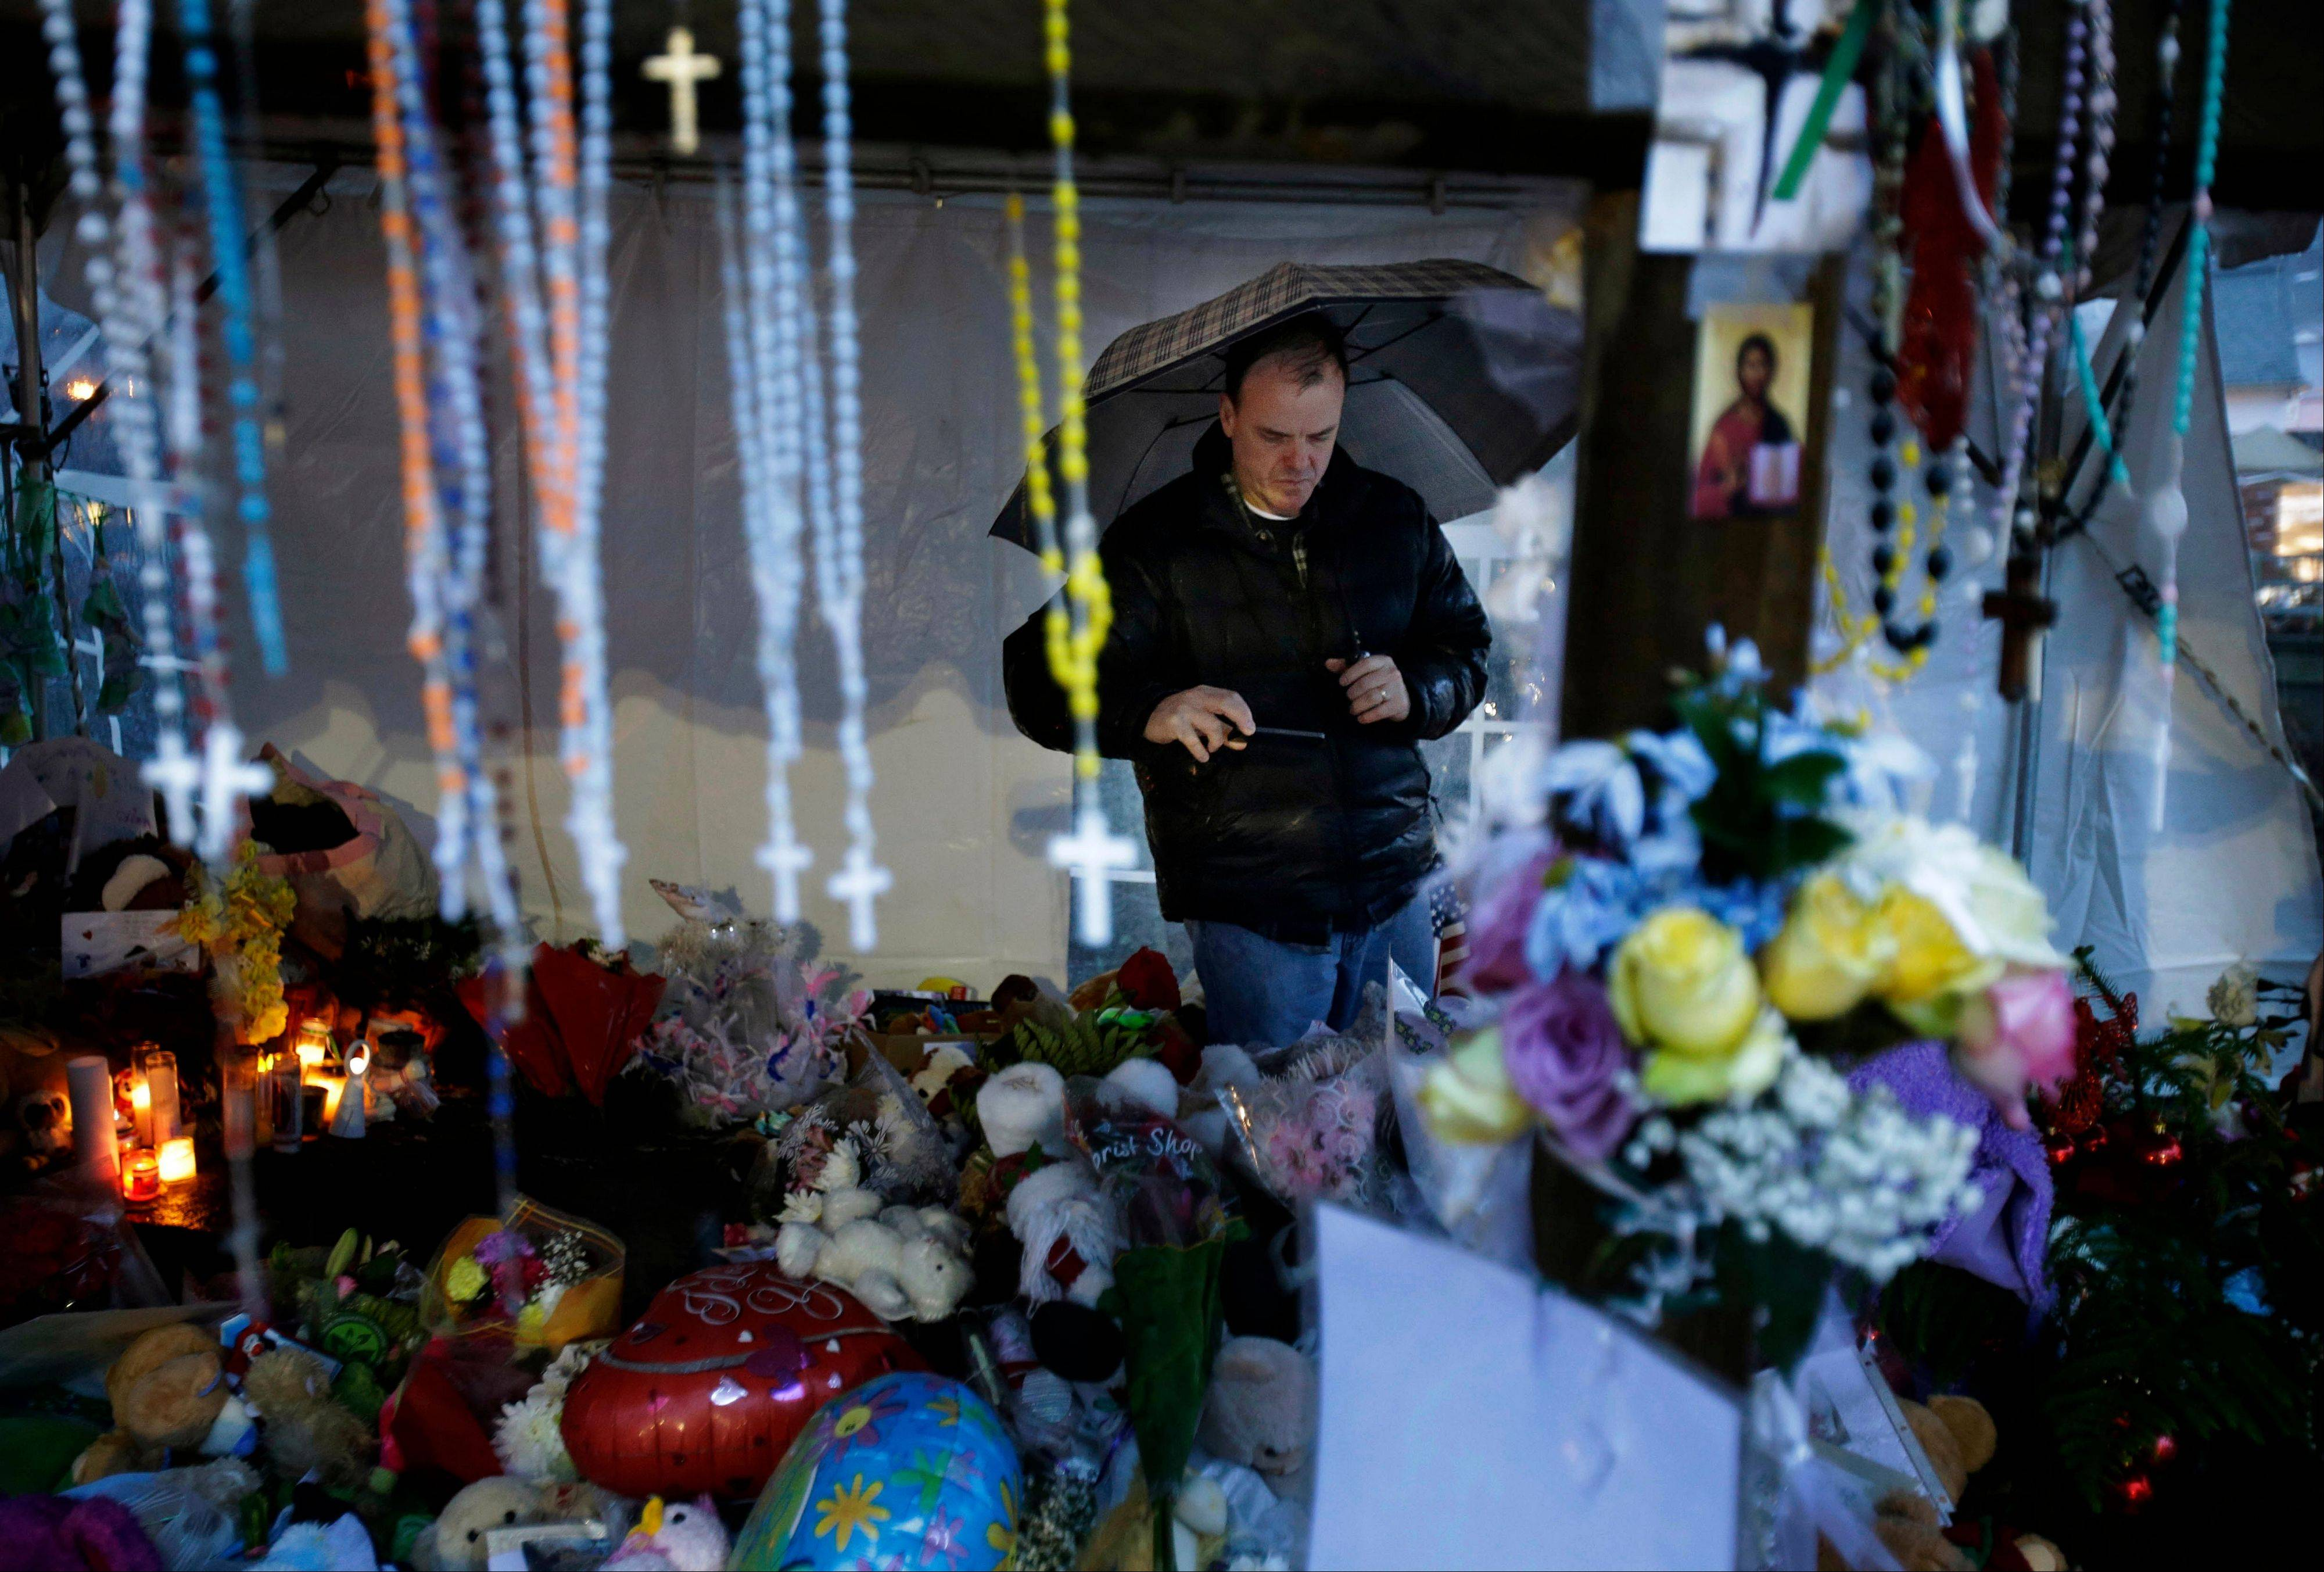 Ben Toby of Sandy Hook visits a memorial to the Newtown shooting victims during a heavy rain in the Sandy Hook village of Newtown, Conn., Friday, Dec. 21, 2012. The shooter, Adam Lanza, walked into Sandy Hook Elementary School in Newtown, Dec. 14, and opened fire, killing 26 people, including 20 children, before killing himself.